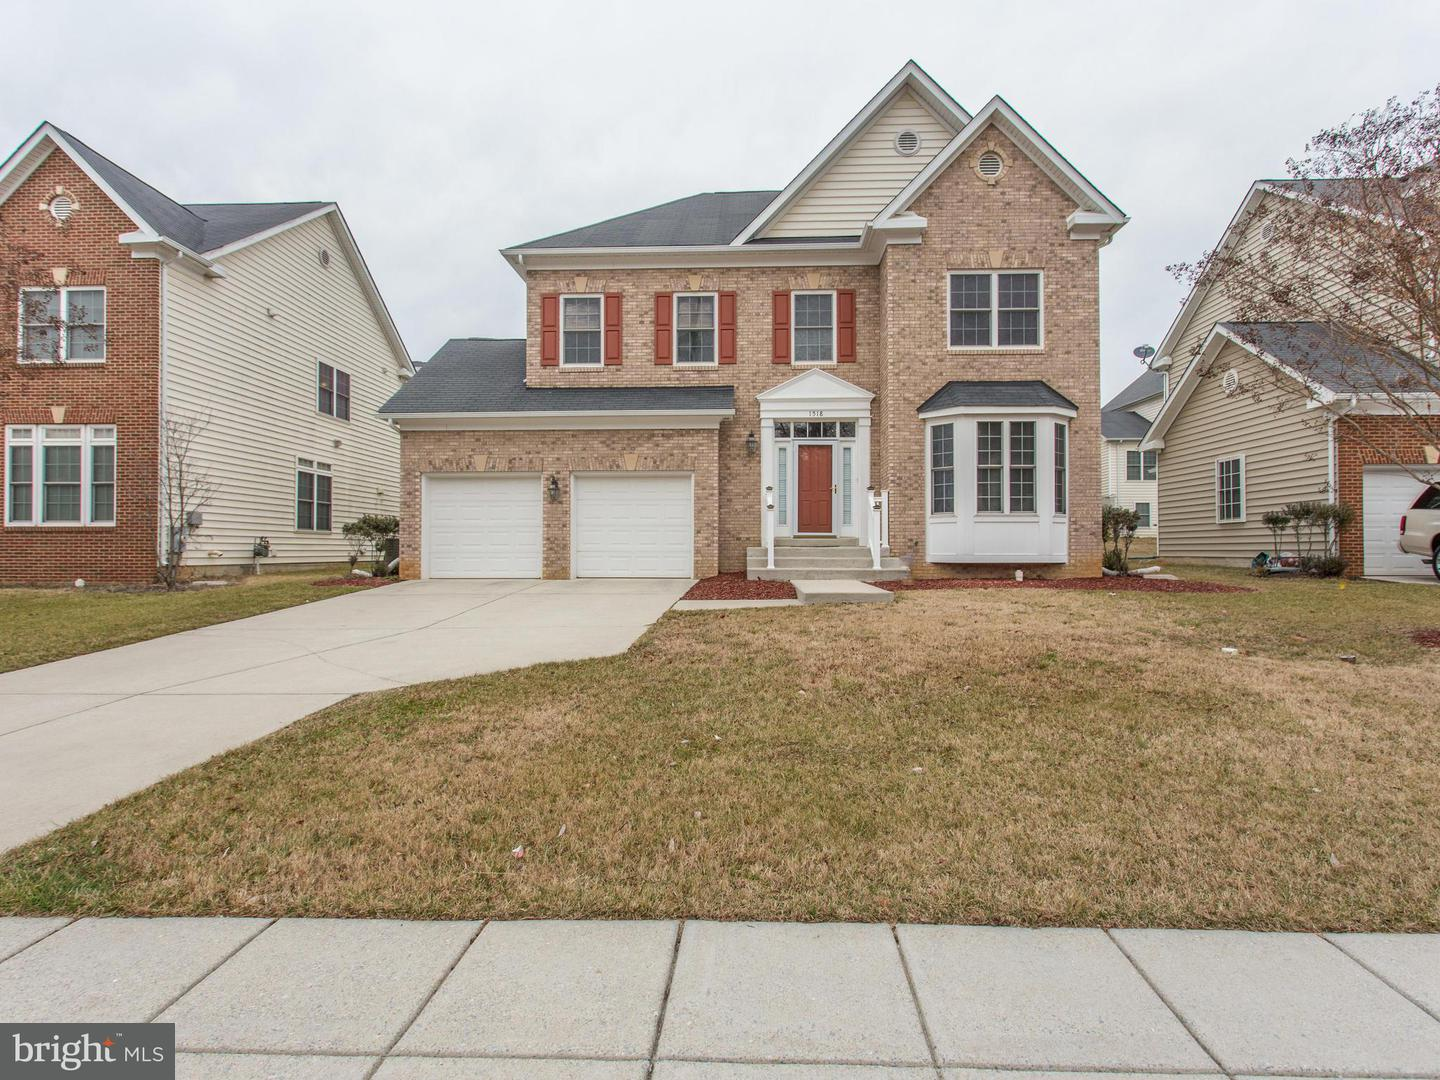 Single Family for Sale at 1518 Mississippi Ave SE Washington, District Of Columbia 20032 United States